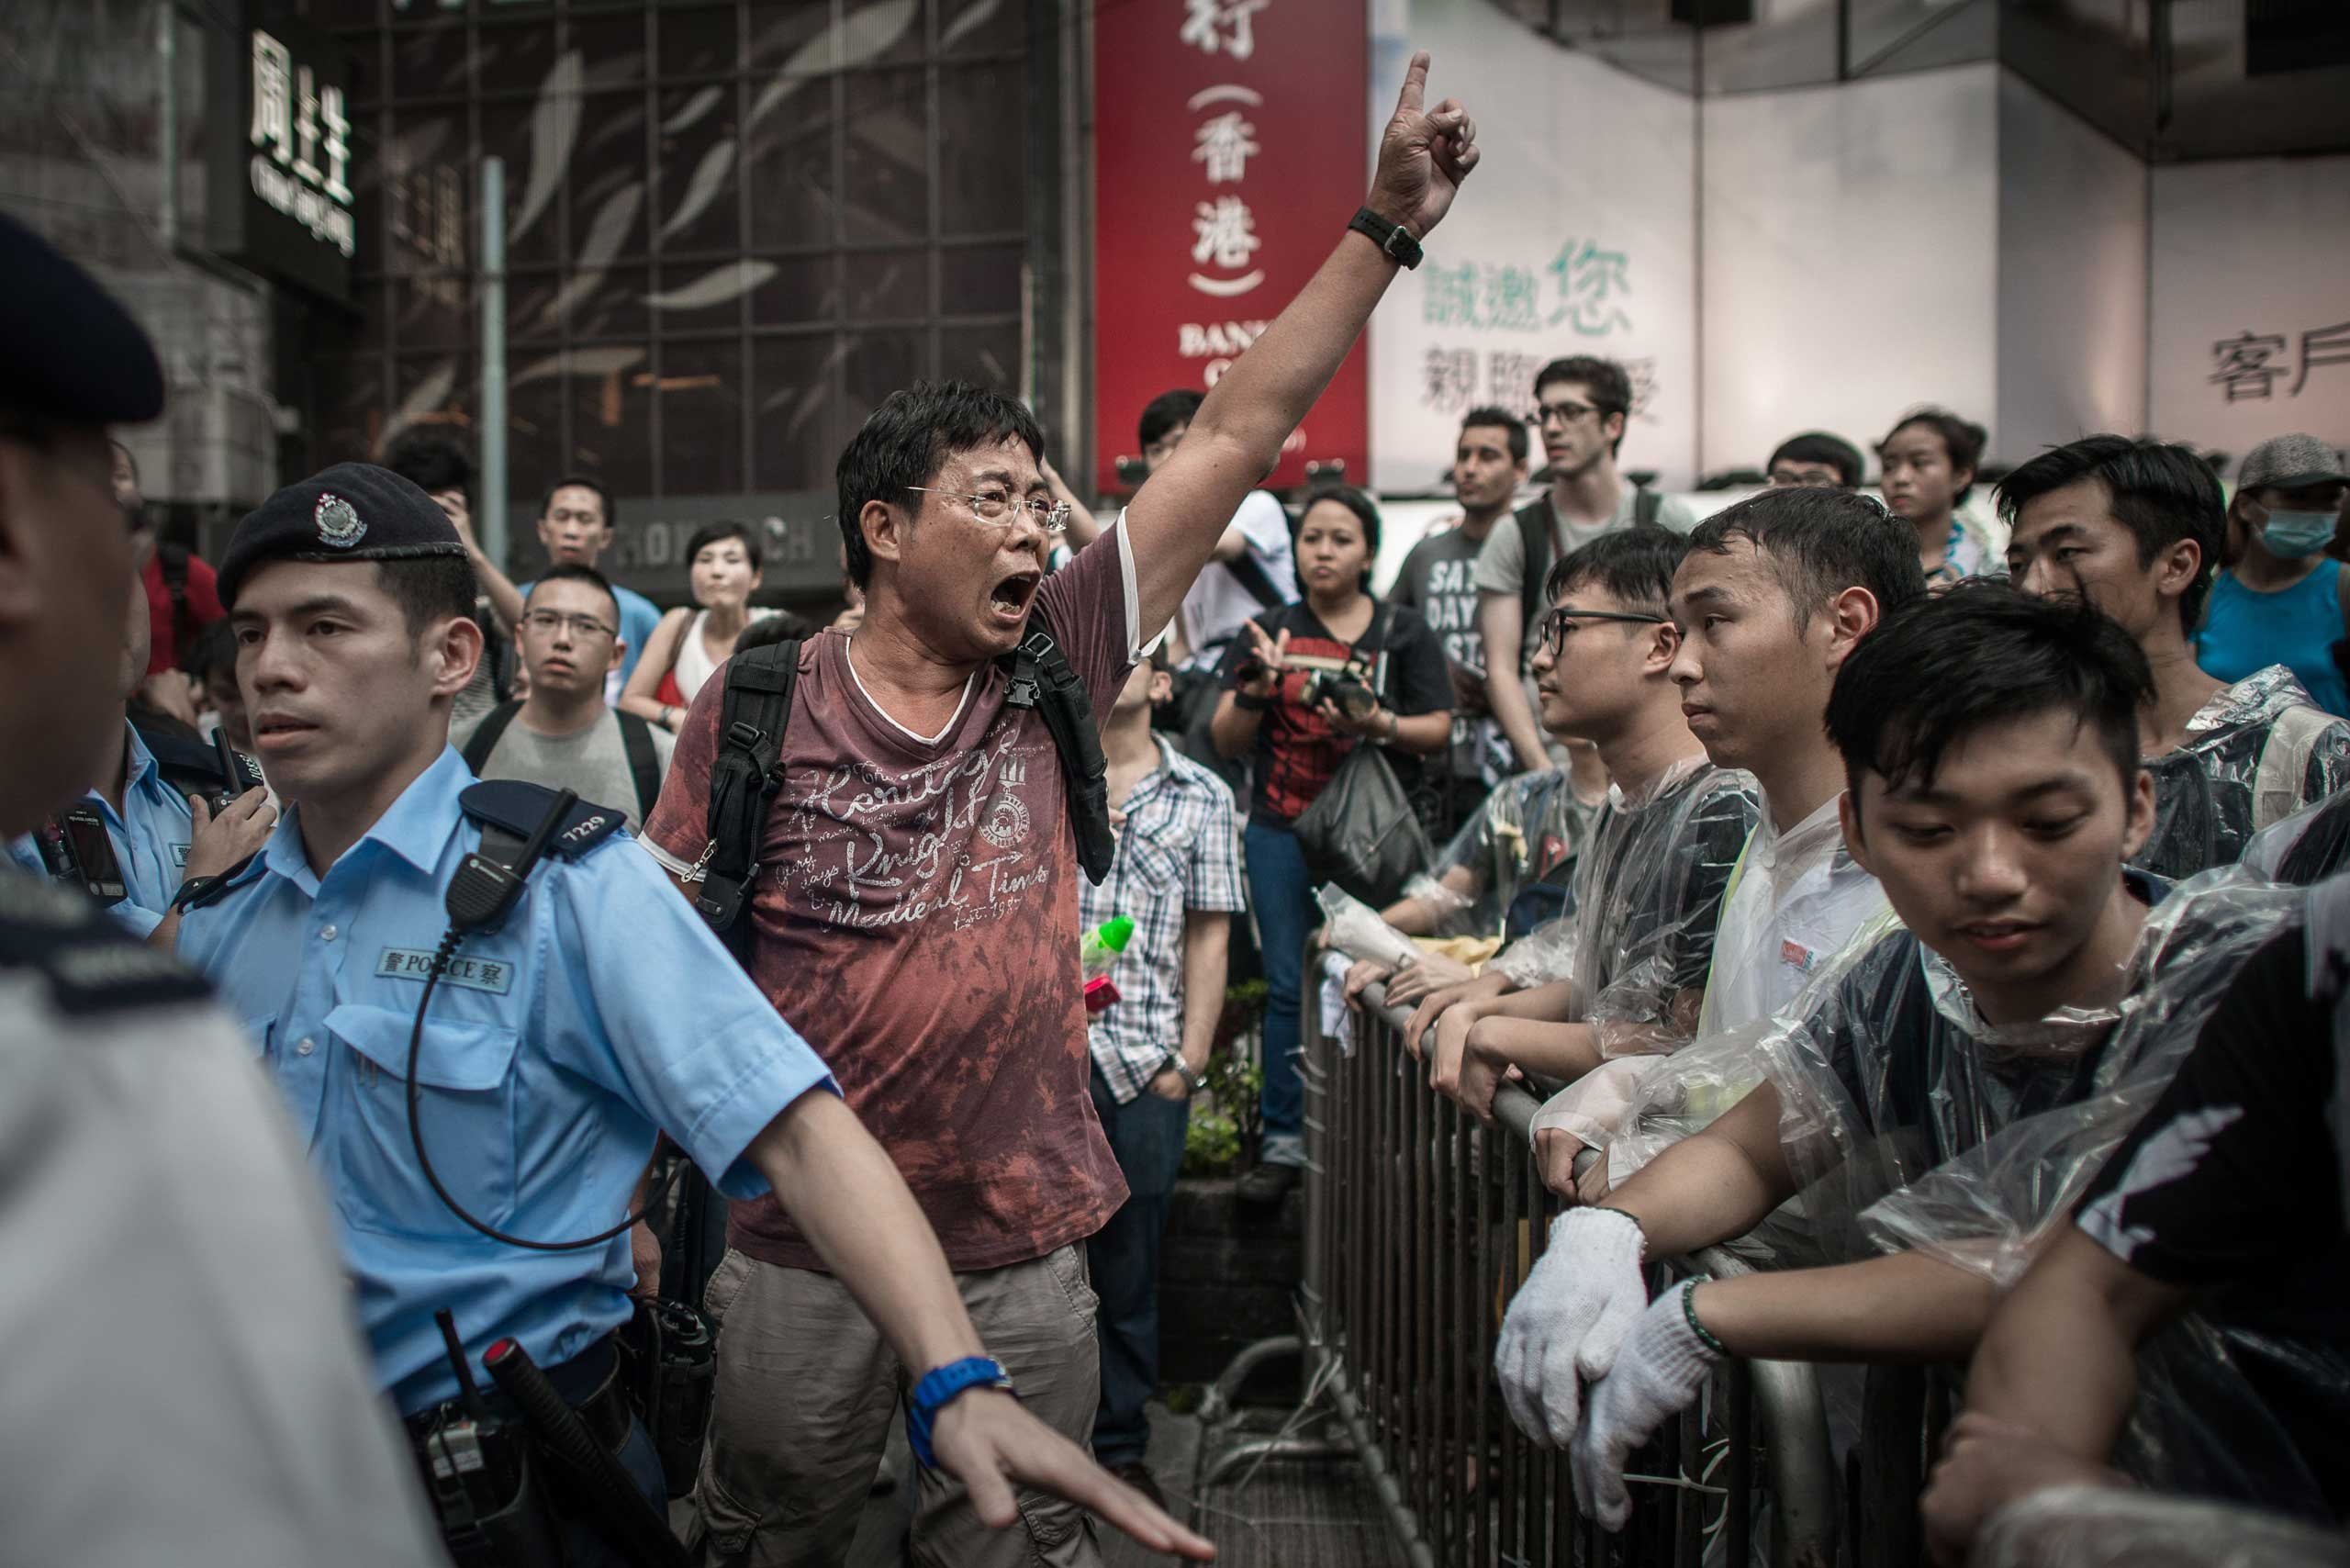 An anti-Occupy protester shouts at pro-democracy demonstrators in an occupied area of Hong Kong on Oct. 3, 2014.